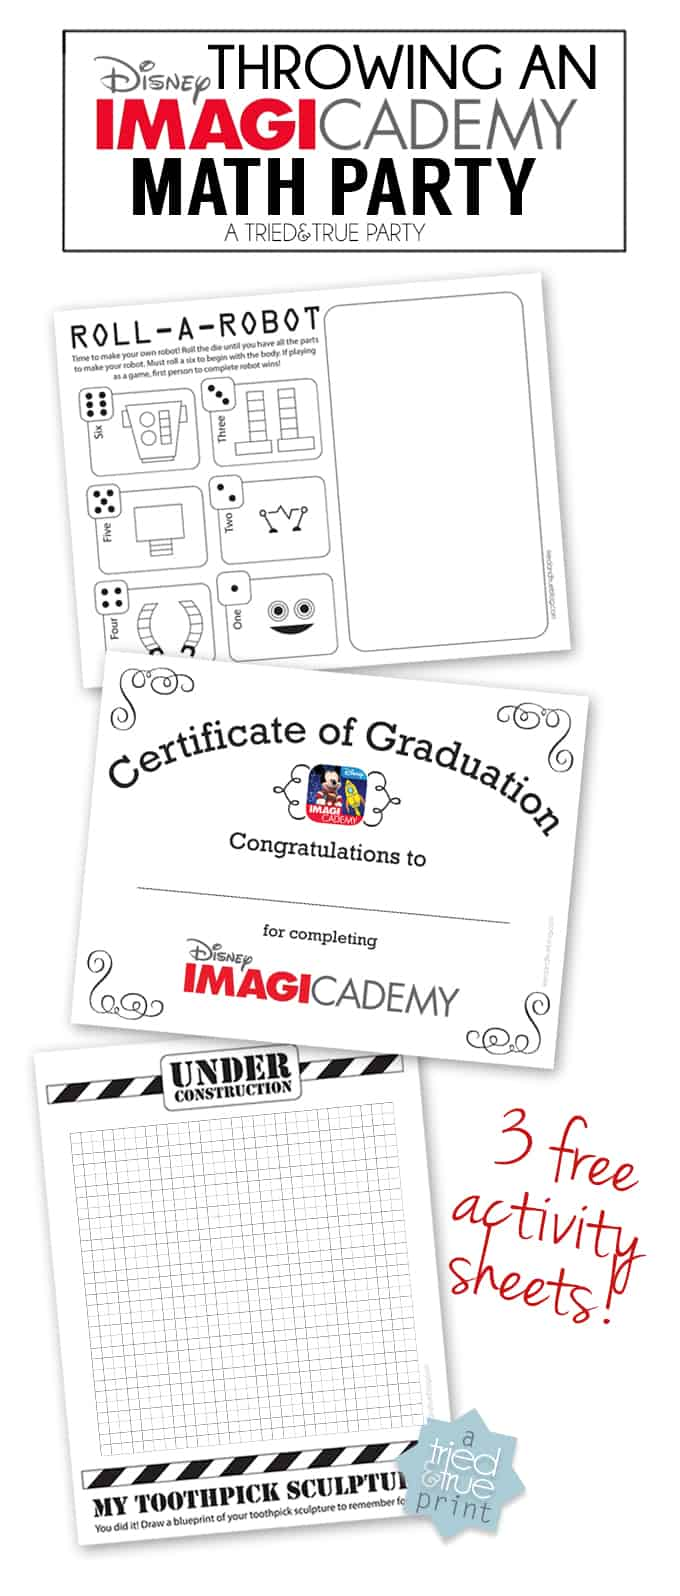 Throwing An Imagicademy Math Party - Free Printables